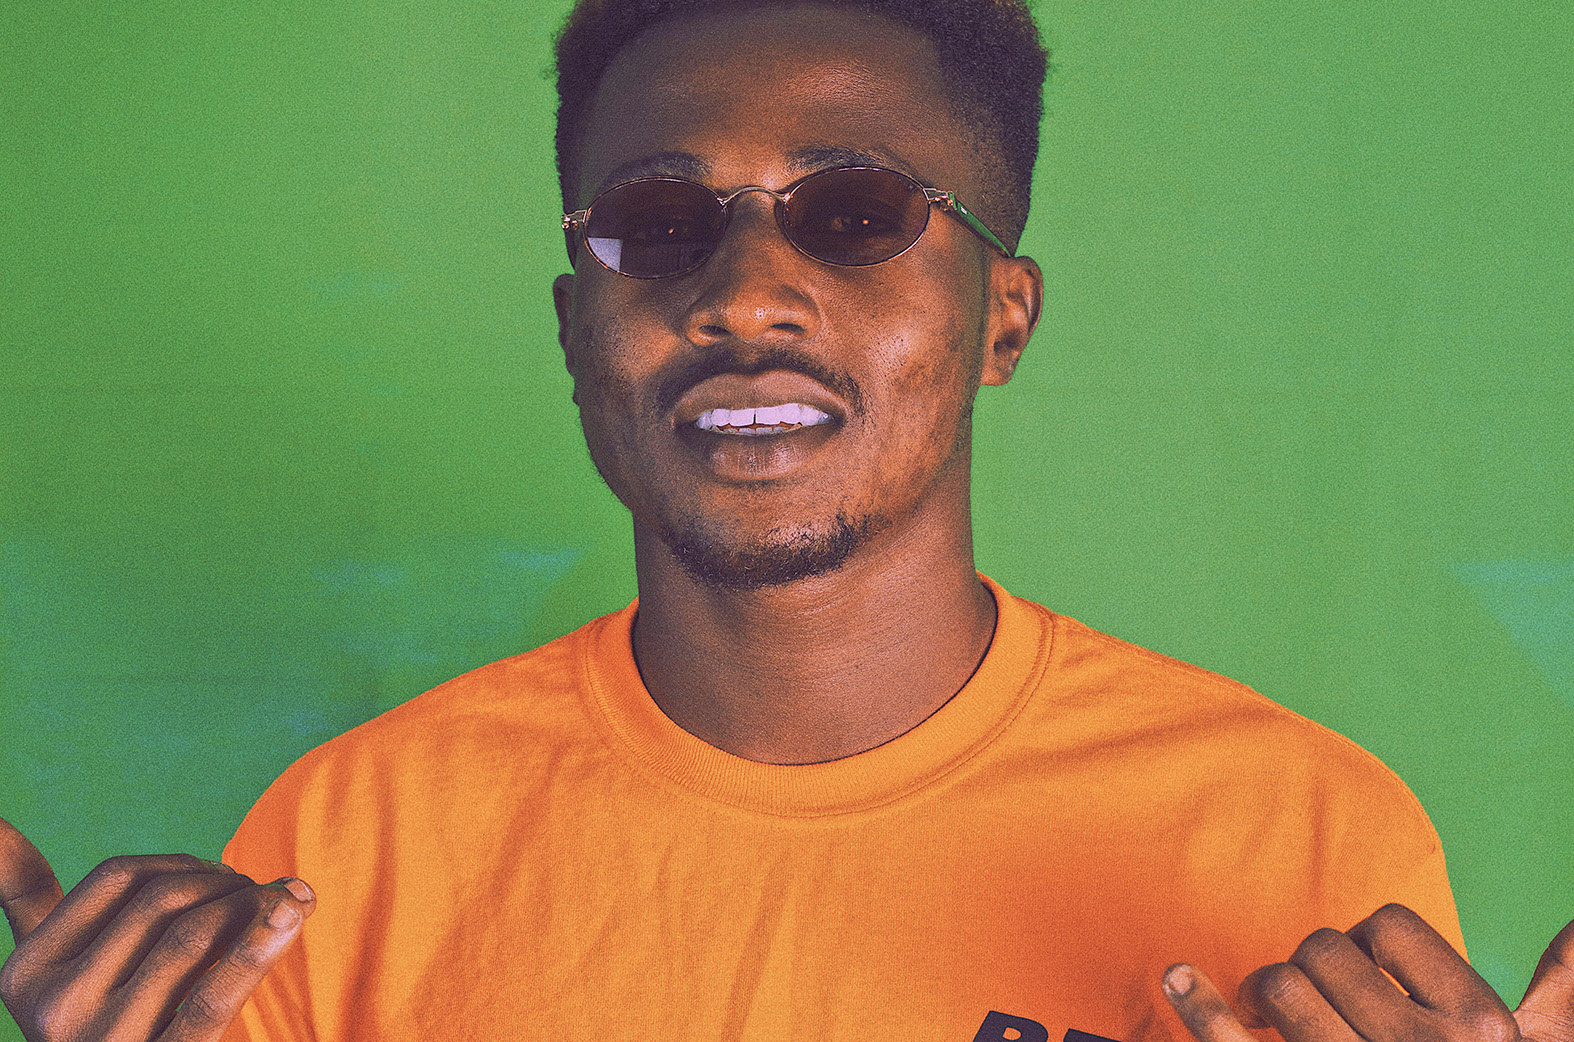 Meet Kelvin Black, a new artist from the Tema